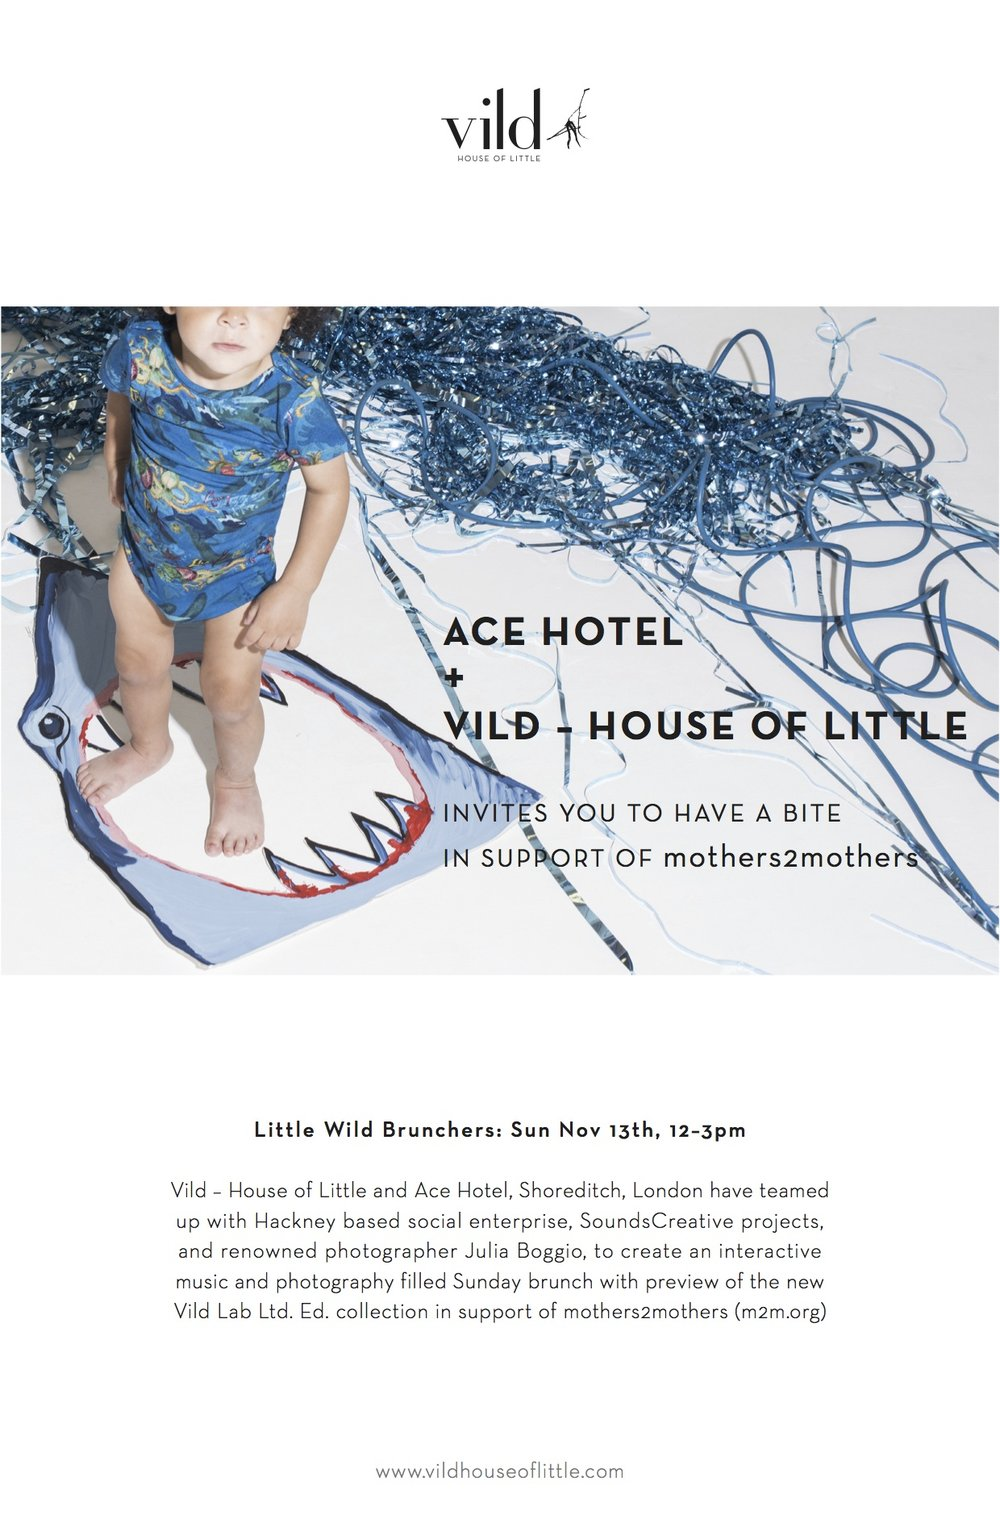 Vild–House-of-Little-Ace-Hotel.jpg